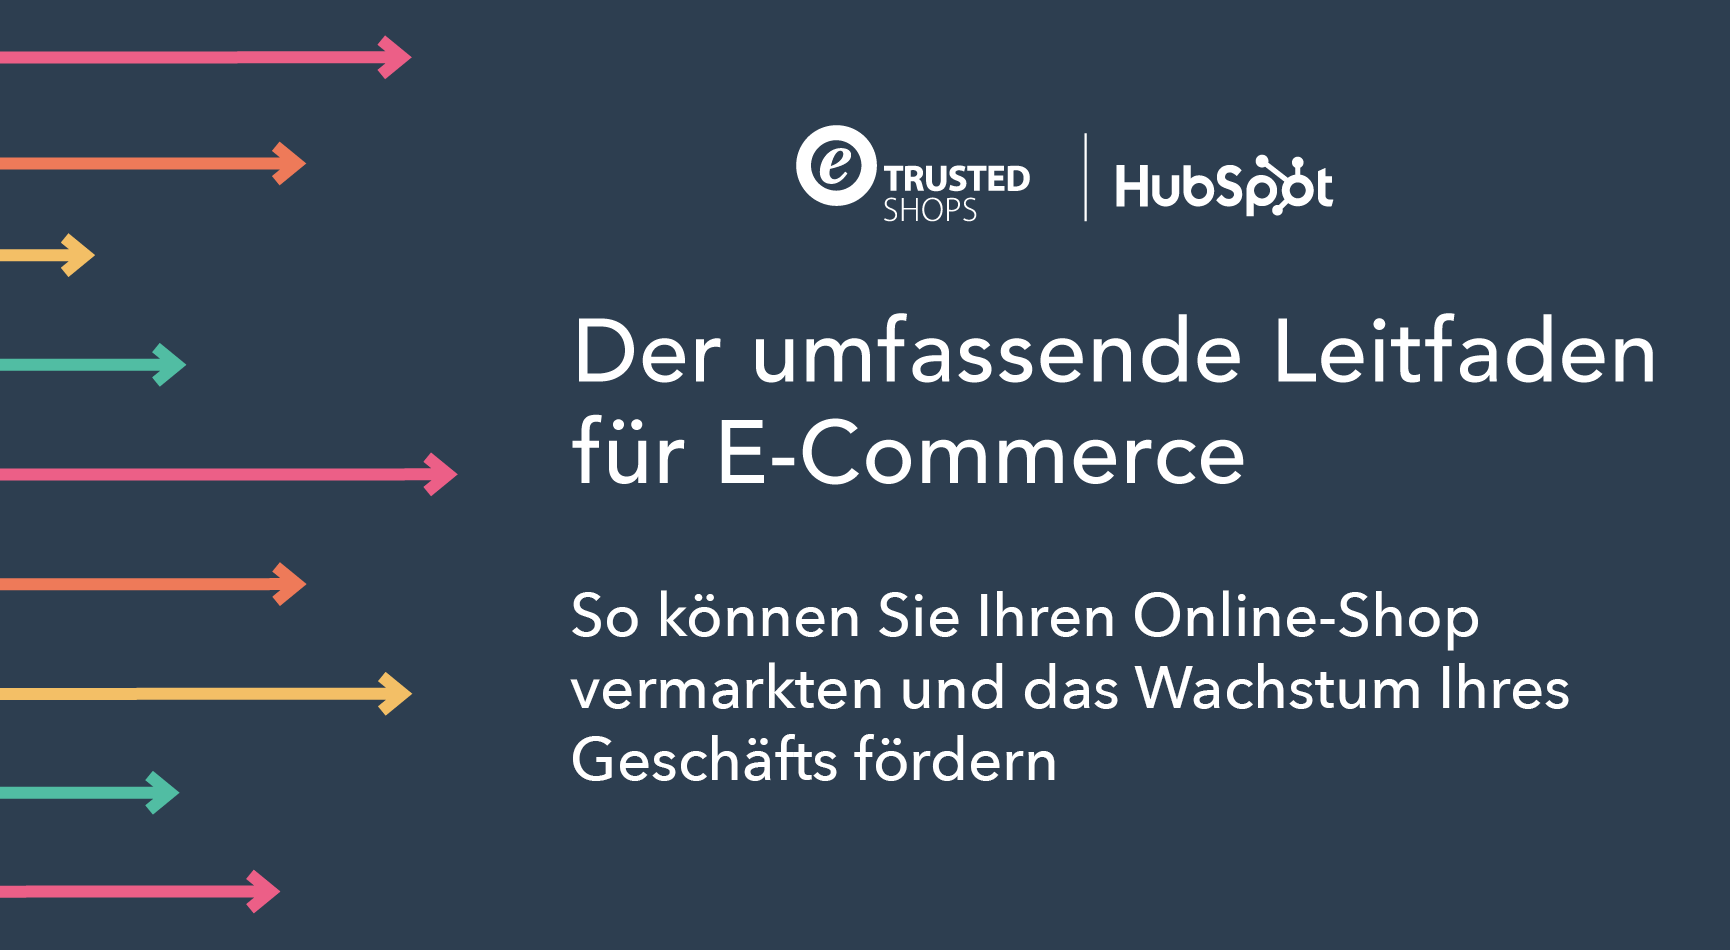 E-commerce-Leitfaden-OG-image